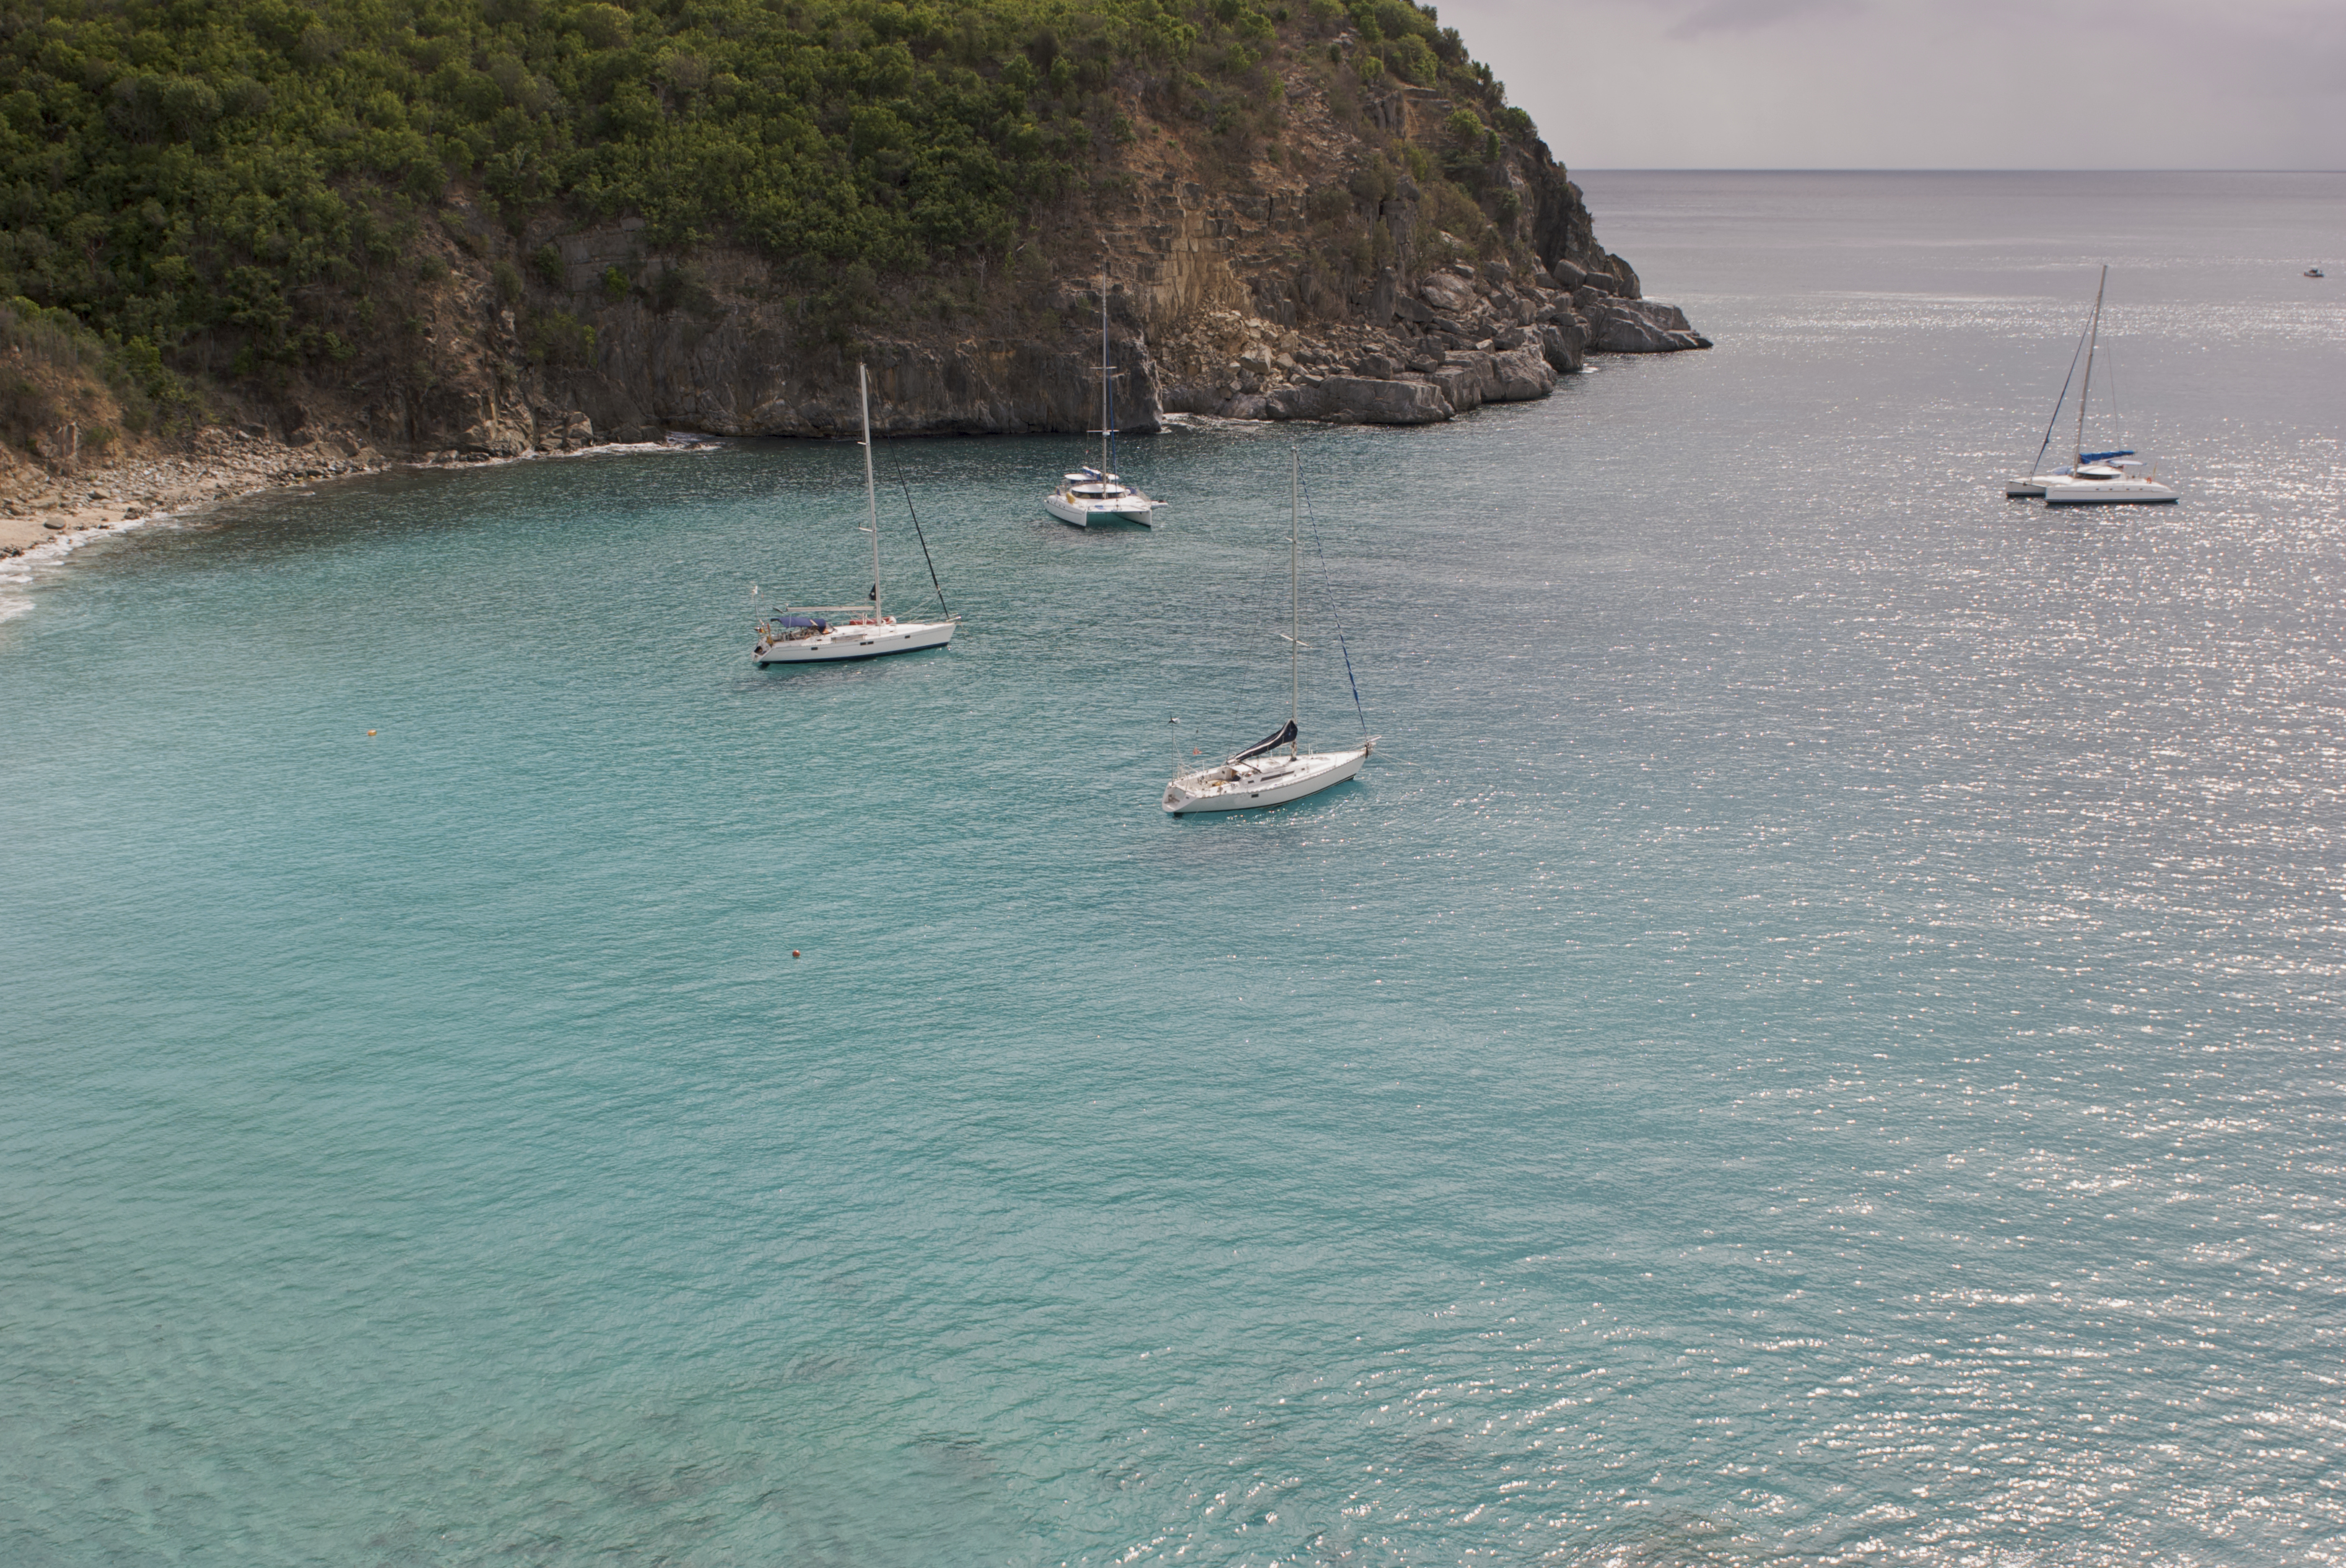 Bay with yachts moored, St Maarten